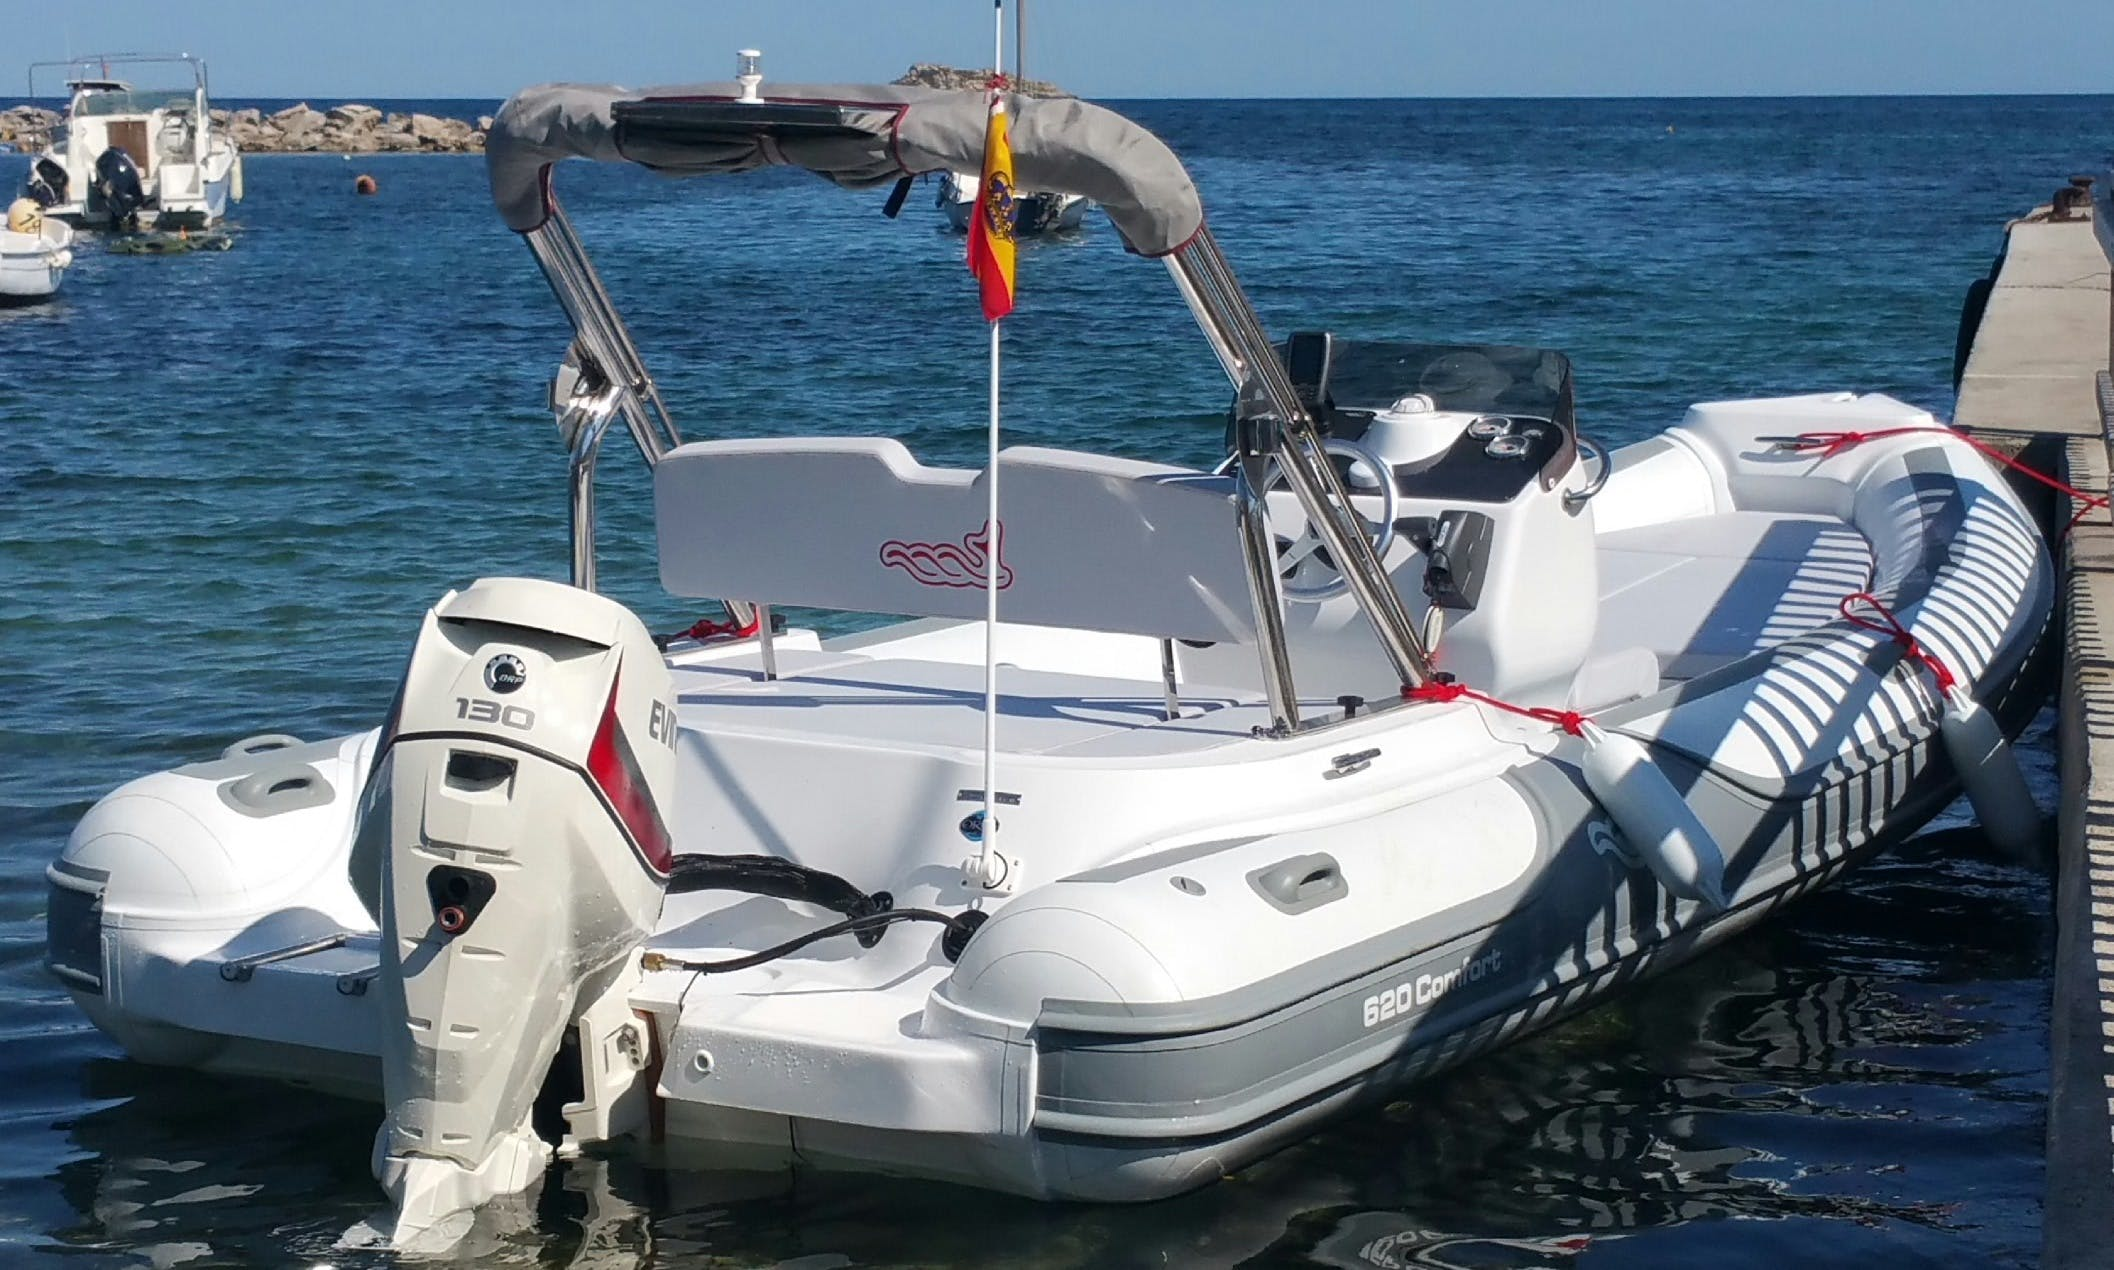 20' Semi-Rigid Inflatable Boat for 12 Person Available to Rent in Ibiza, Spain